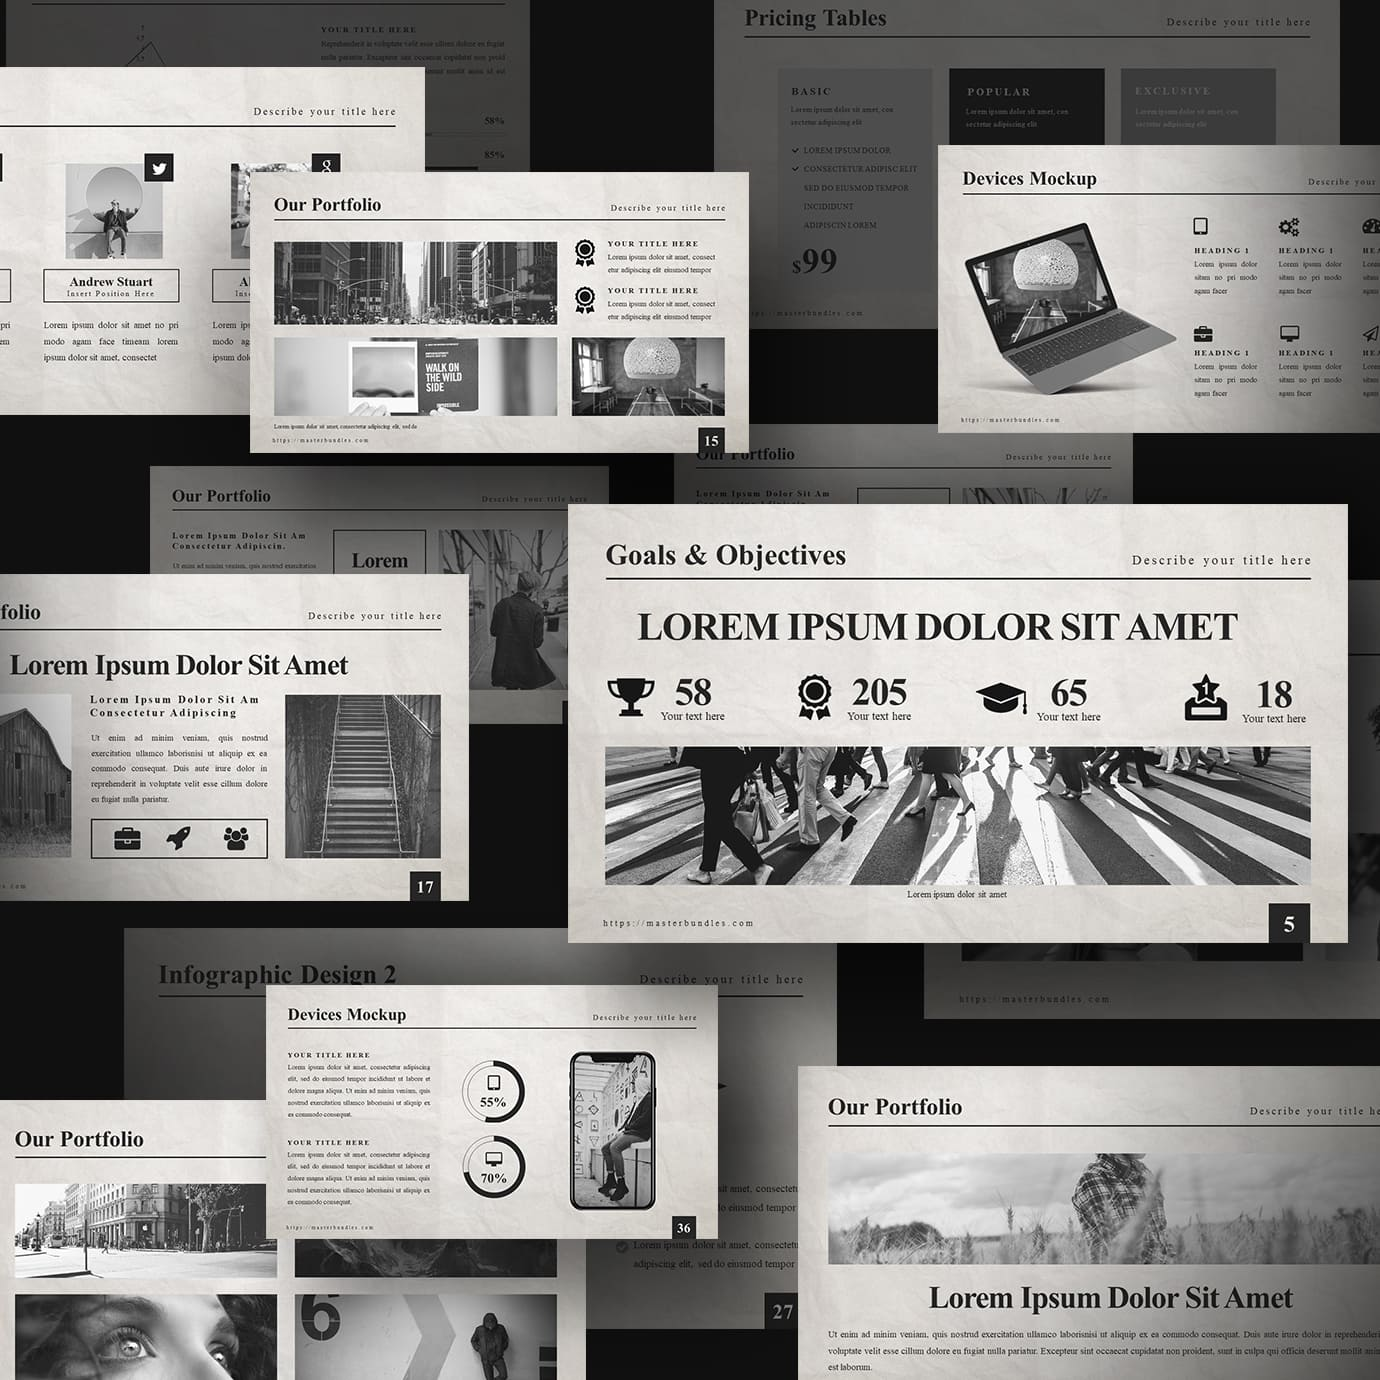 Black and white slides with newspaper photos, icons, and text blocks.